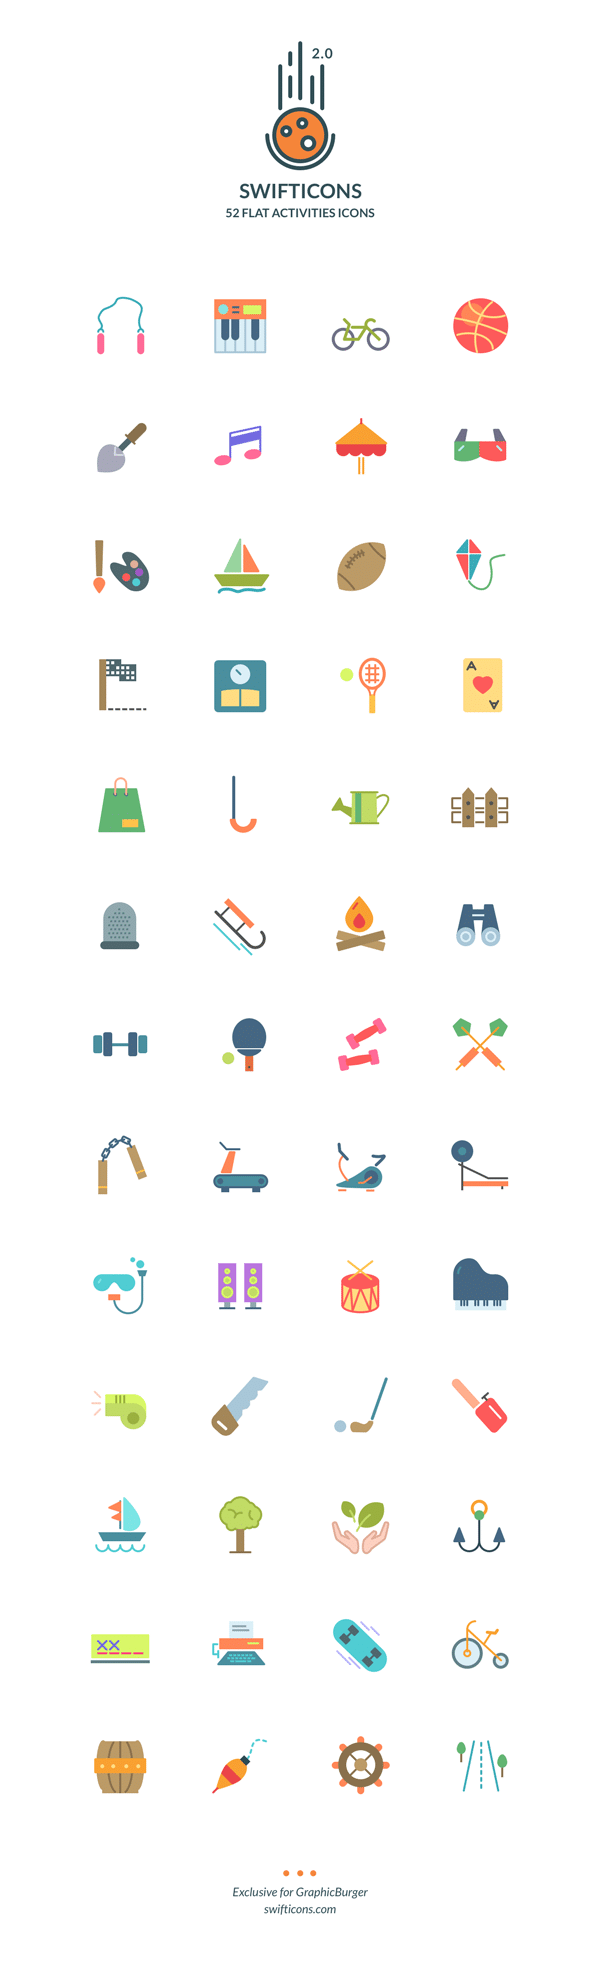 52 Flat Activities Icons Free